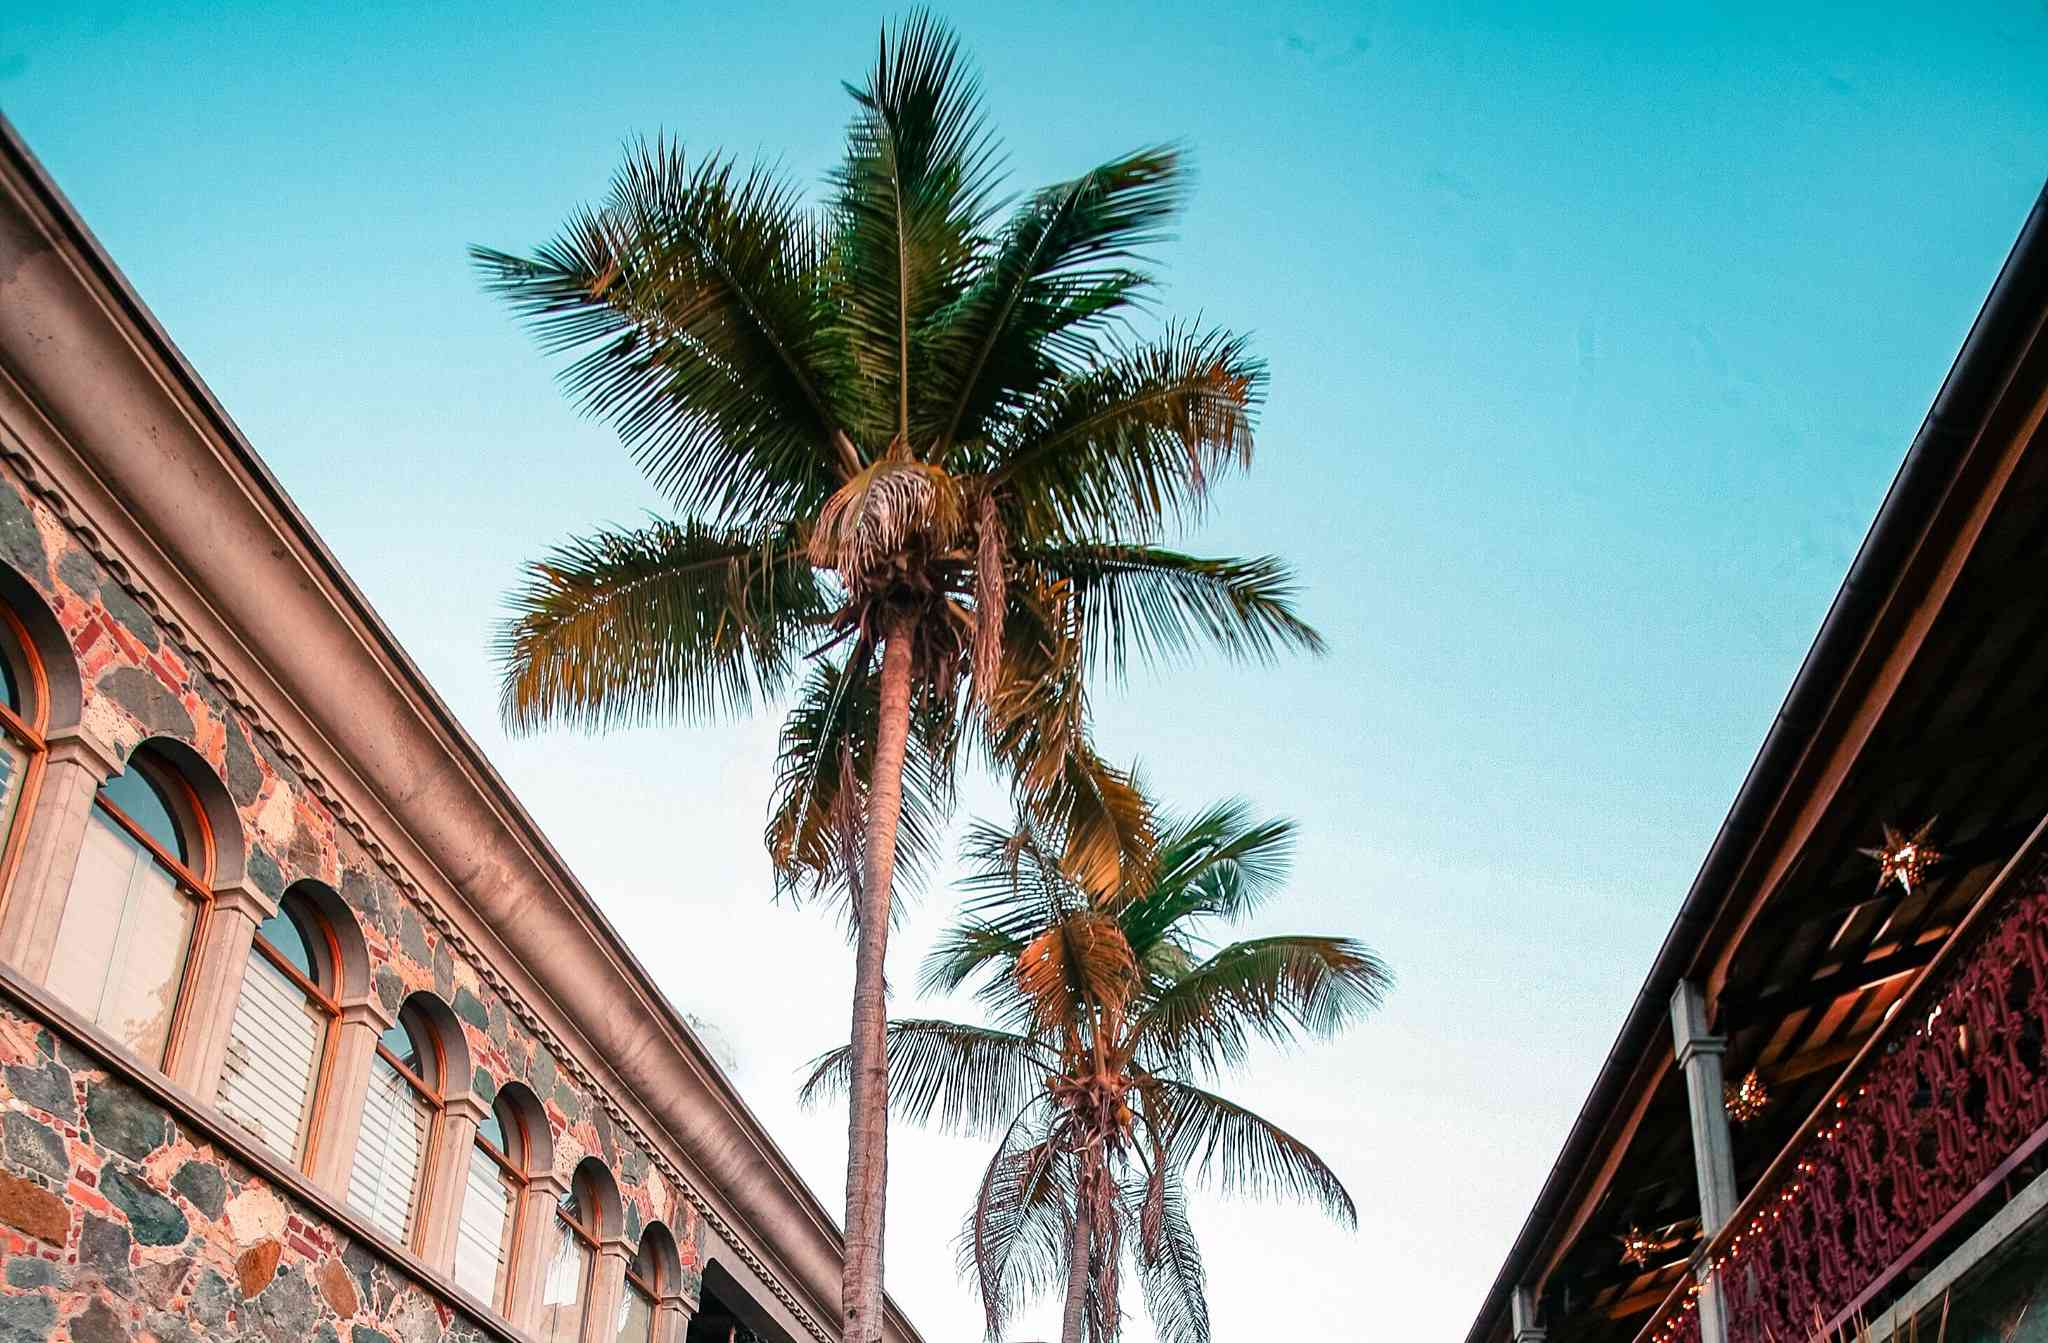 low angle view of palm trees and buildings in Mongoose Junction St. John